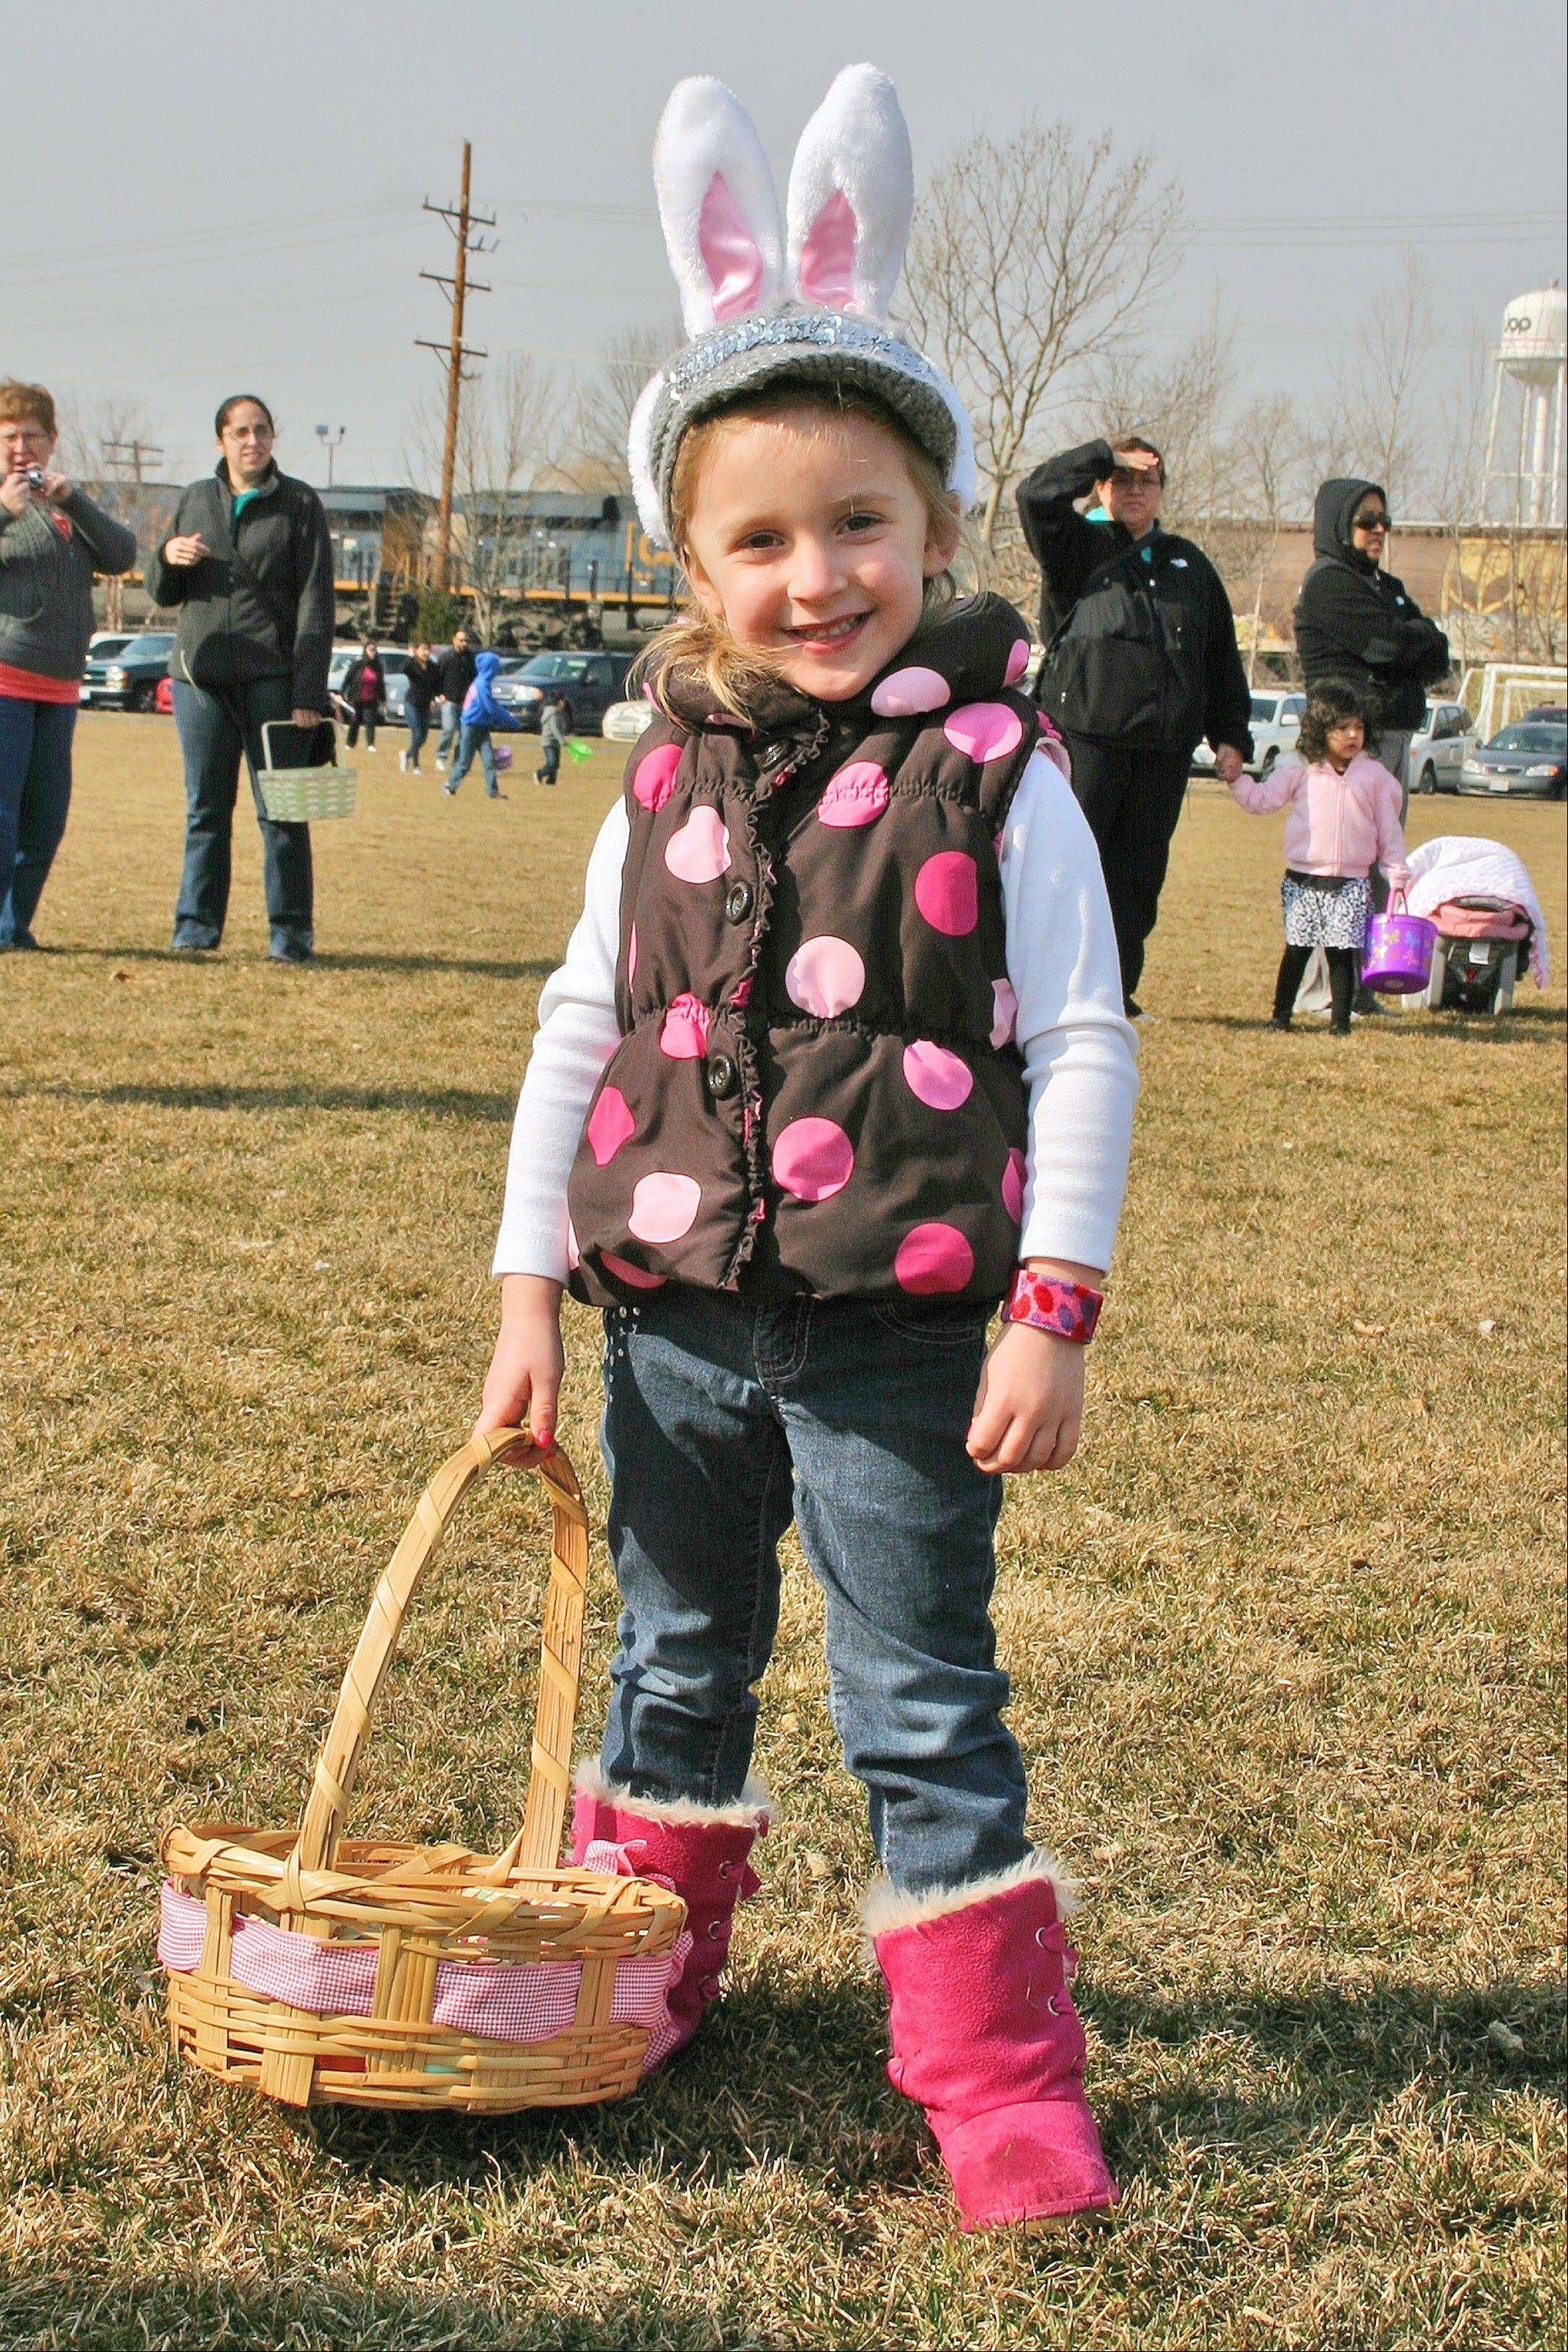 Madison Jakubowski, 4, collected a dozen eggs at the annual Des Plaines Park District free Easter egg hunt on Saturday, March 30, at Prairie Lake Park.